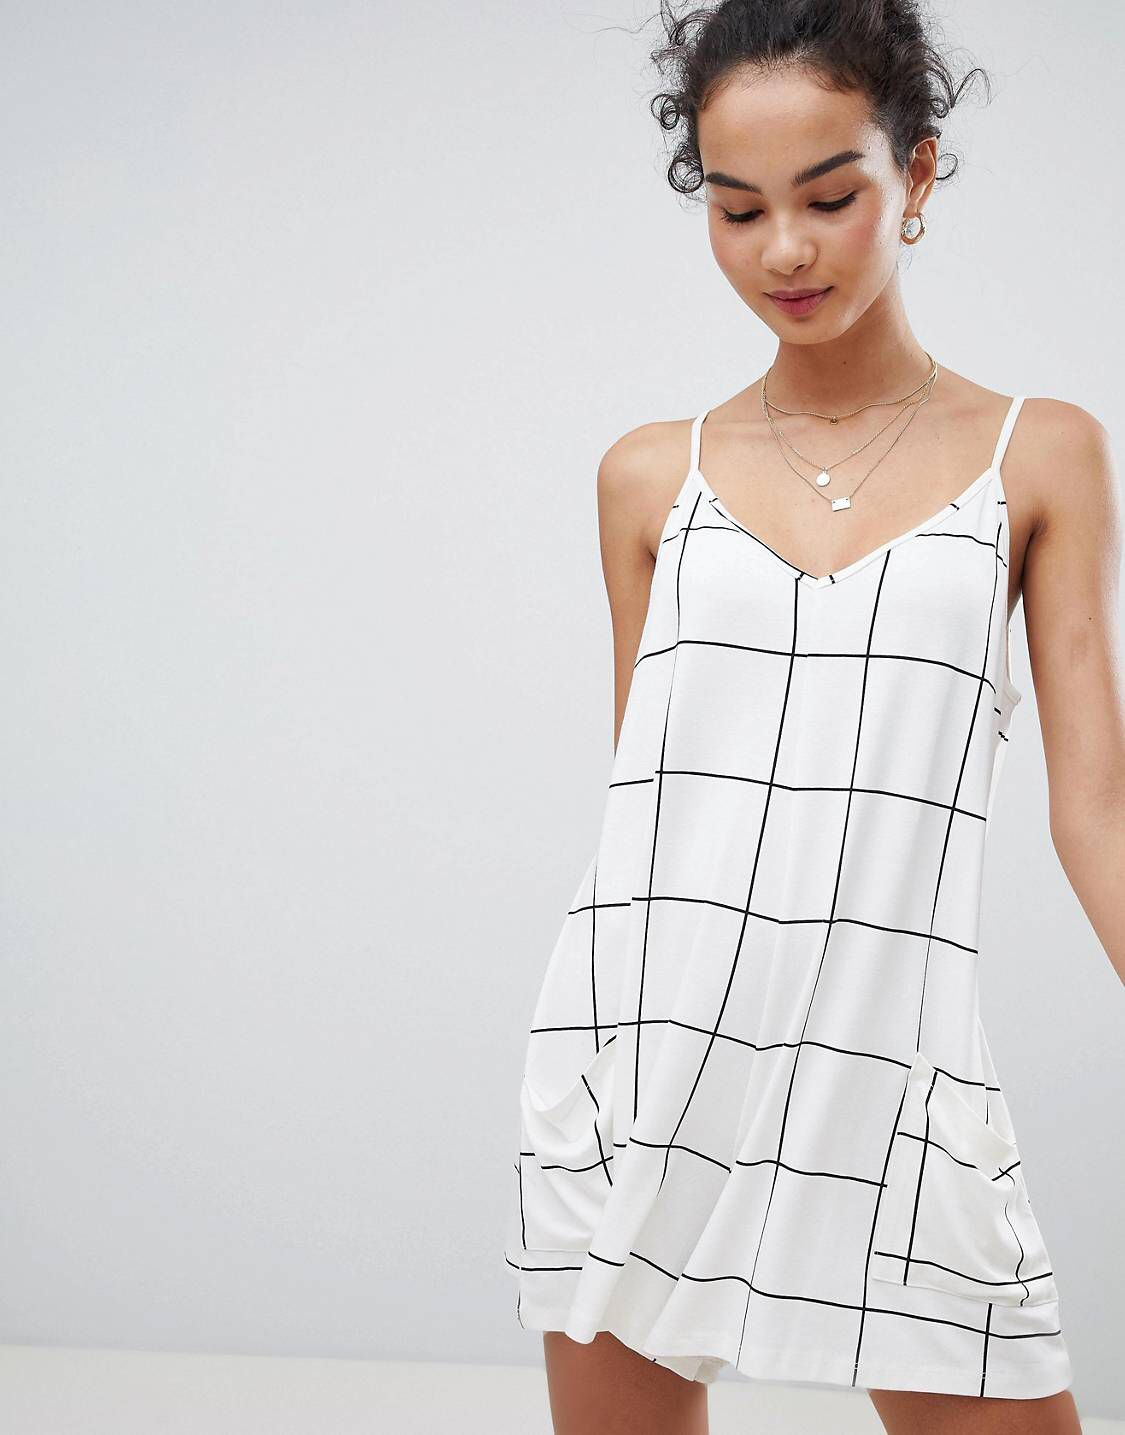 9bb356b0921b Just when I thought I didn t need something new from ASOS